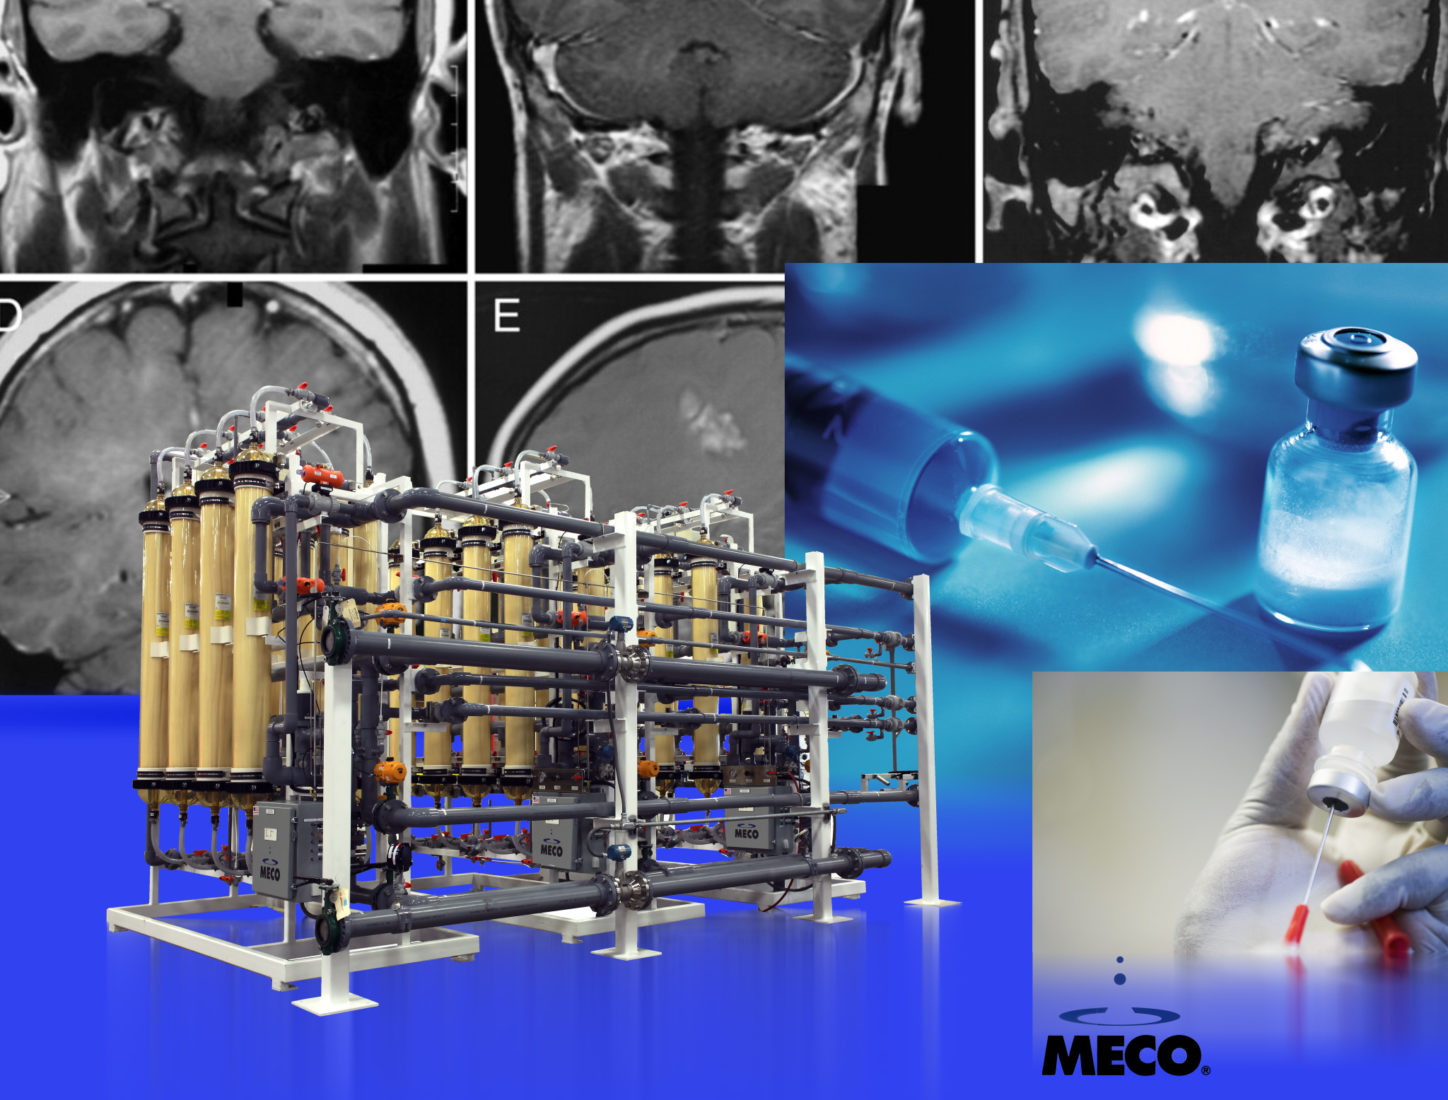 MECO Water Purification Helps Produce Multiple Sclerosis (MS) Treatments